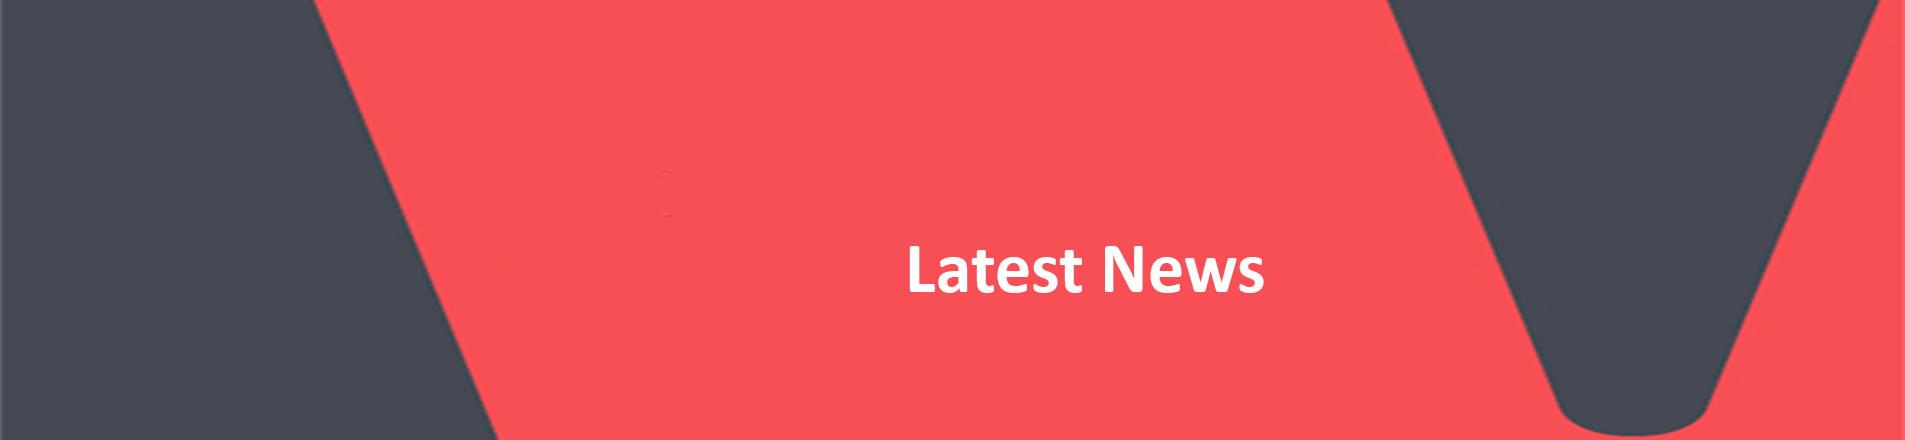 red banner with white text reading latest news